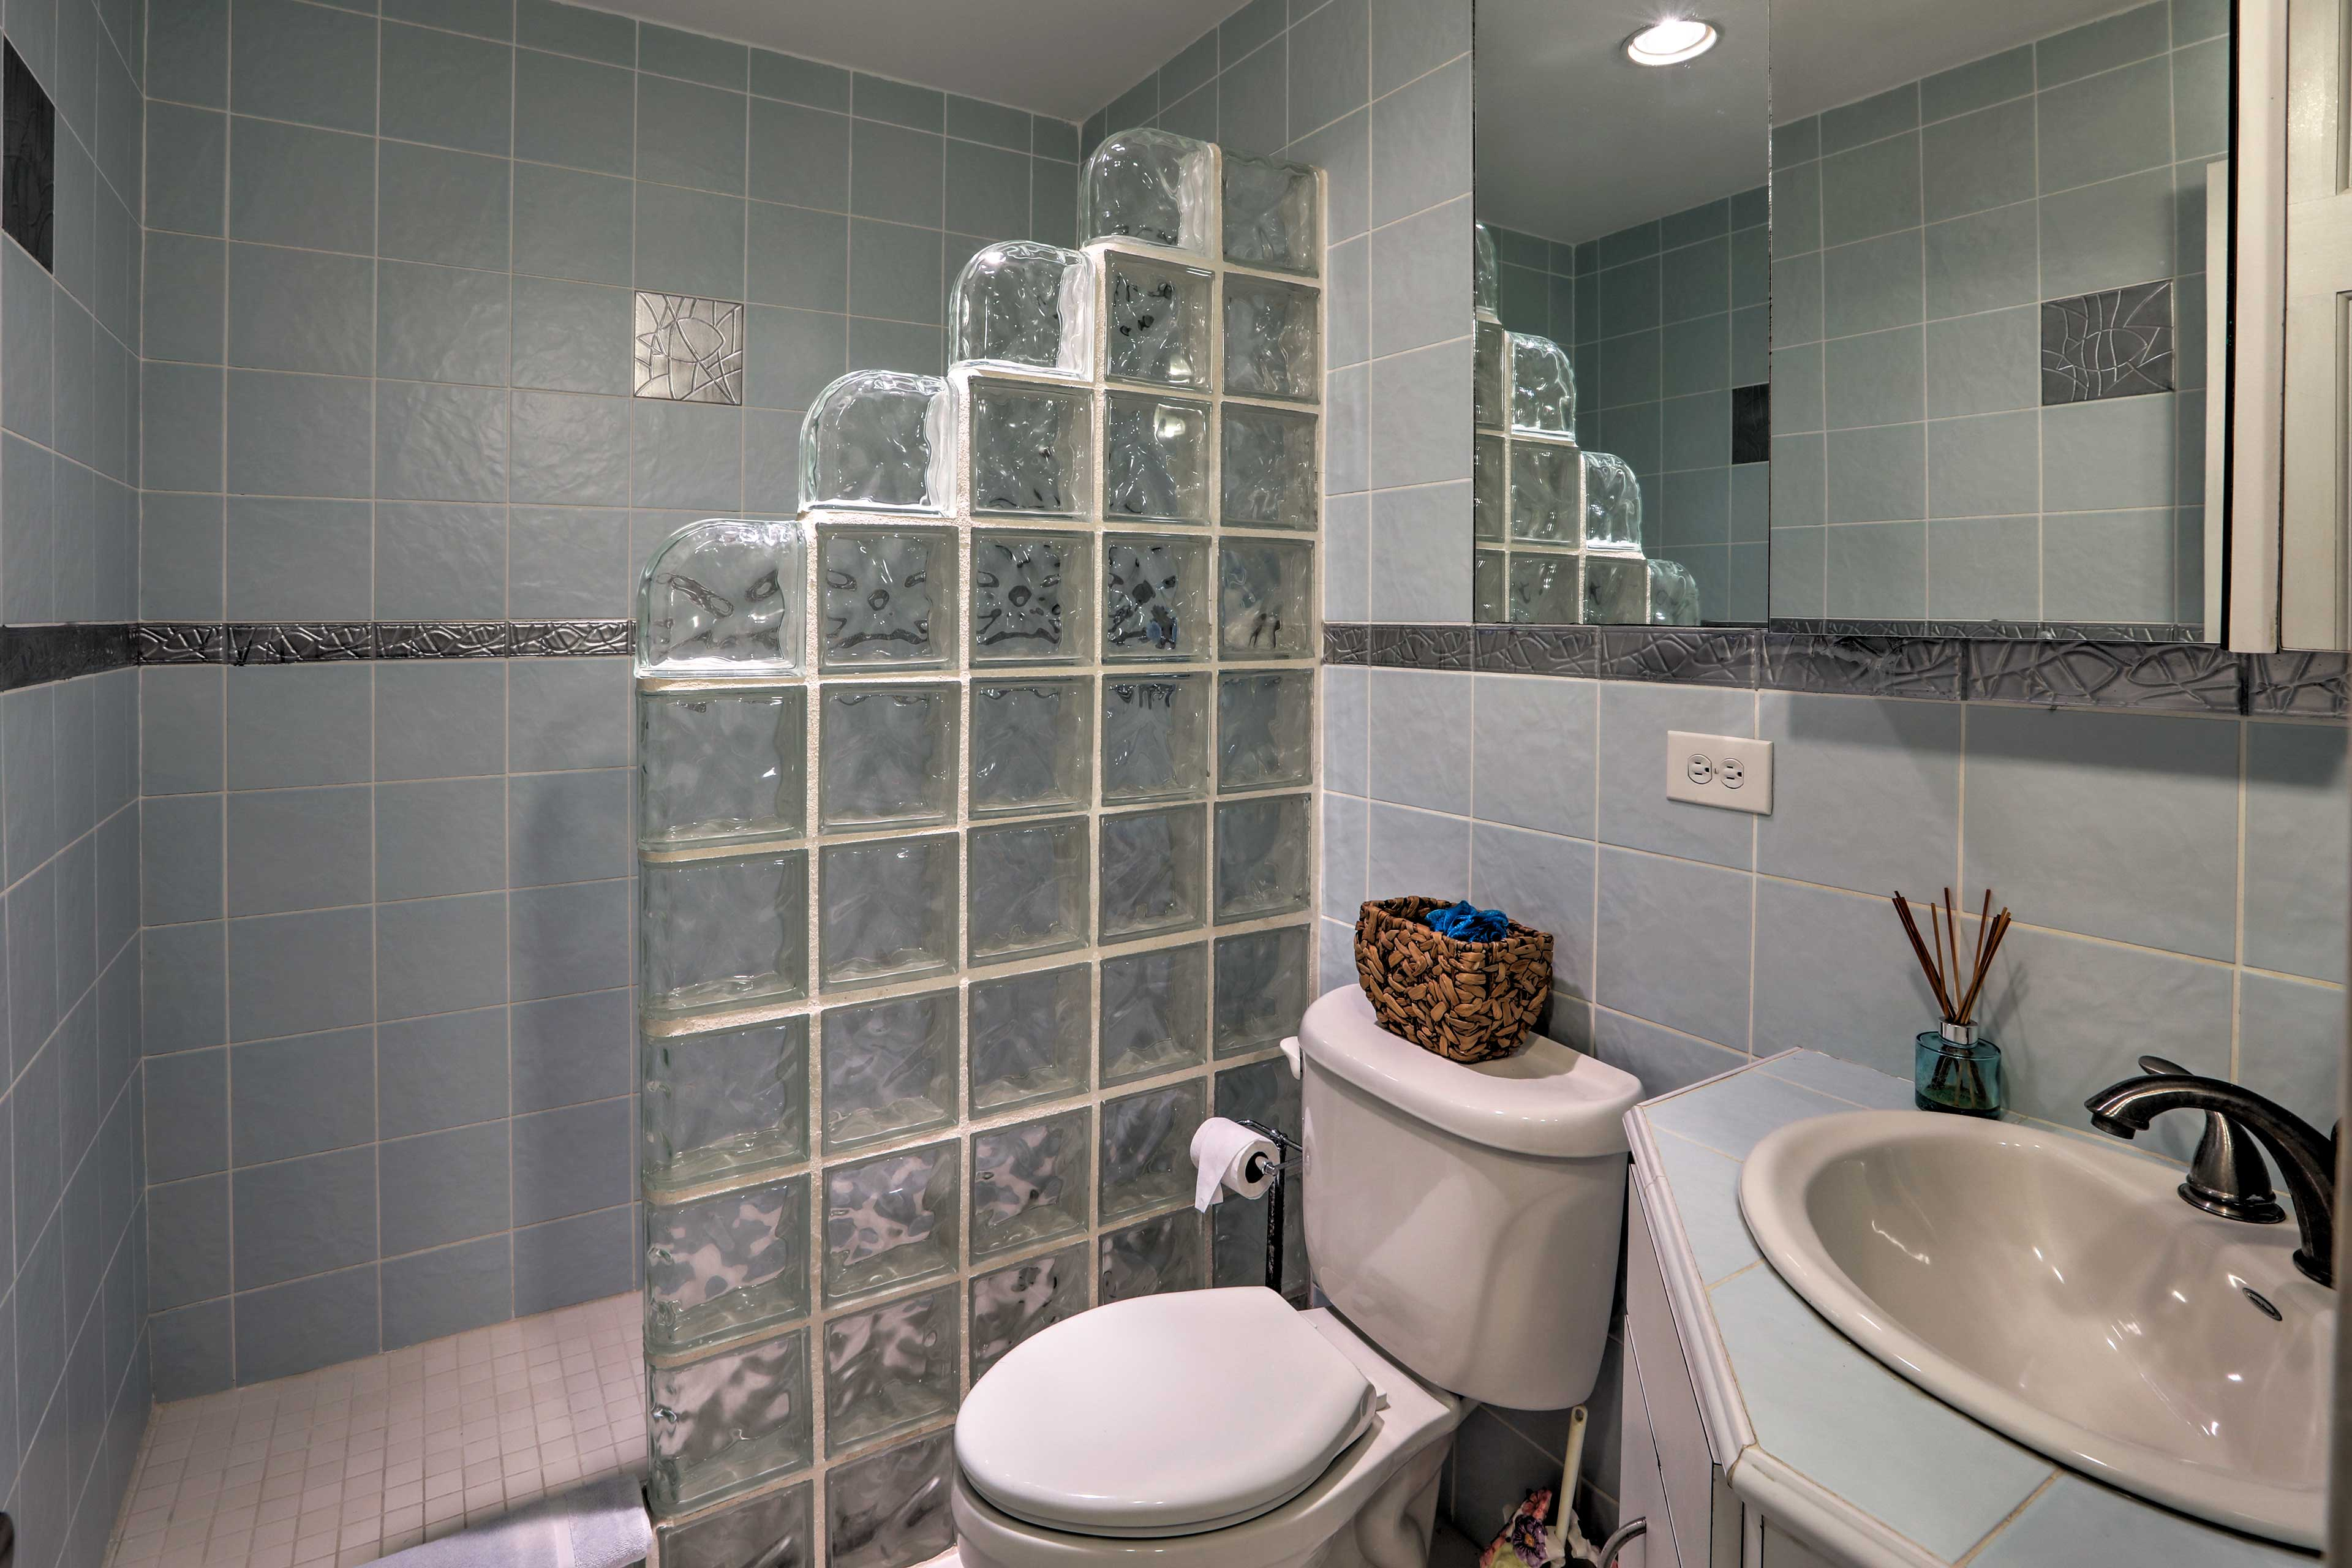 There's another walk-in shower in the second full bathroom.